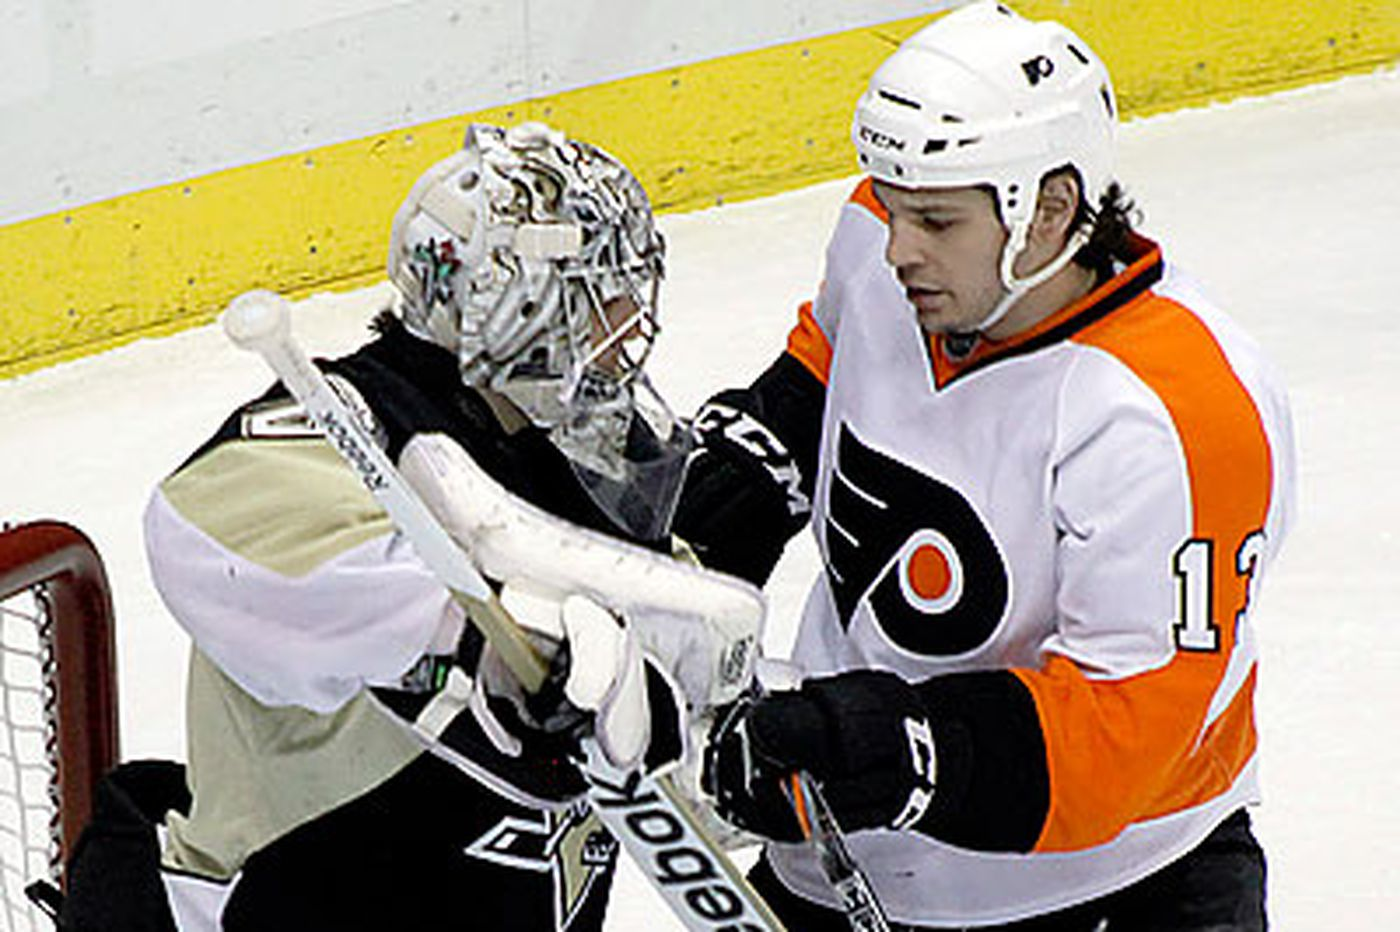 Flyers-Penguins rivalry could be at risk in realignment